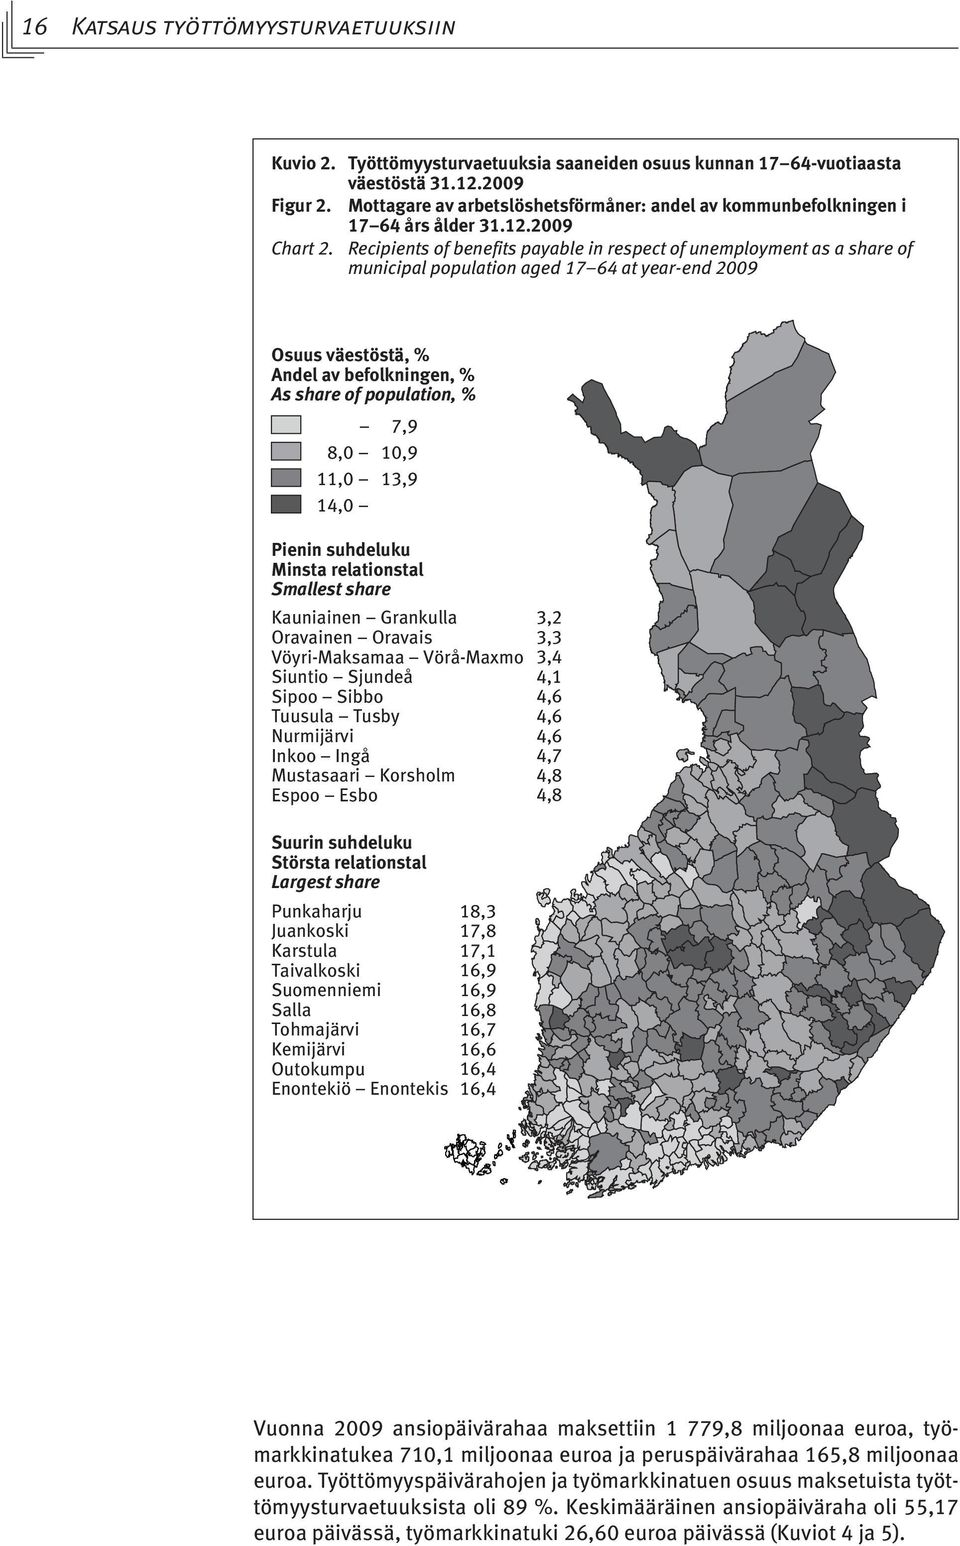 Recipients of benefits payable in respect of unemployment as a share of municipal population aged 17 64 at year-end 2009 Osuus väestöstä, % Andel av befolkningen, % As share of population, % 7,9 8,0